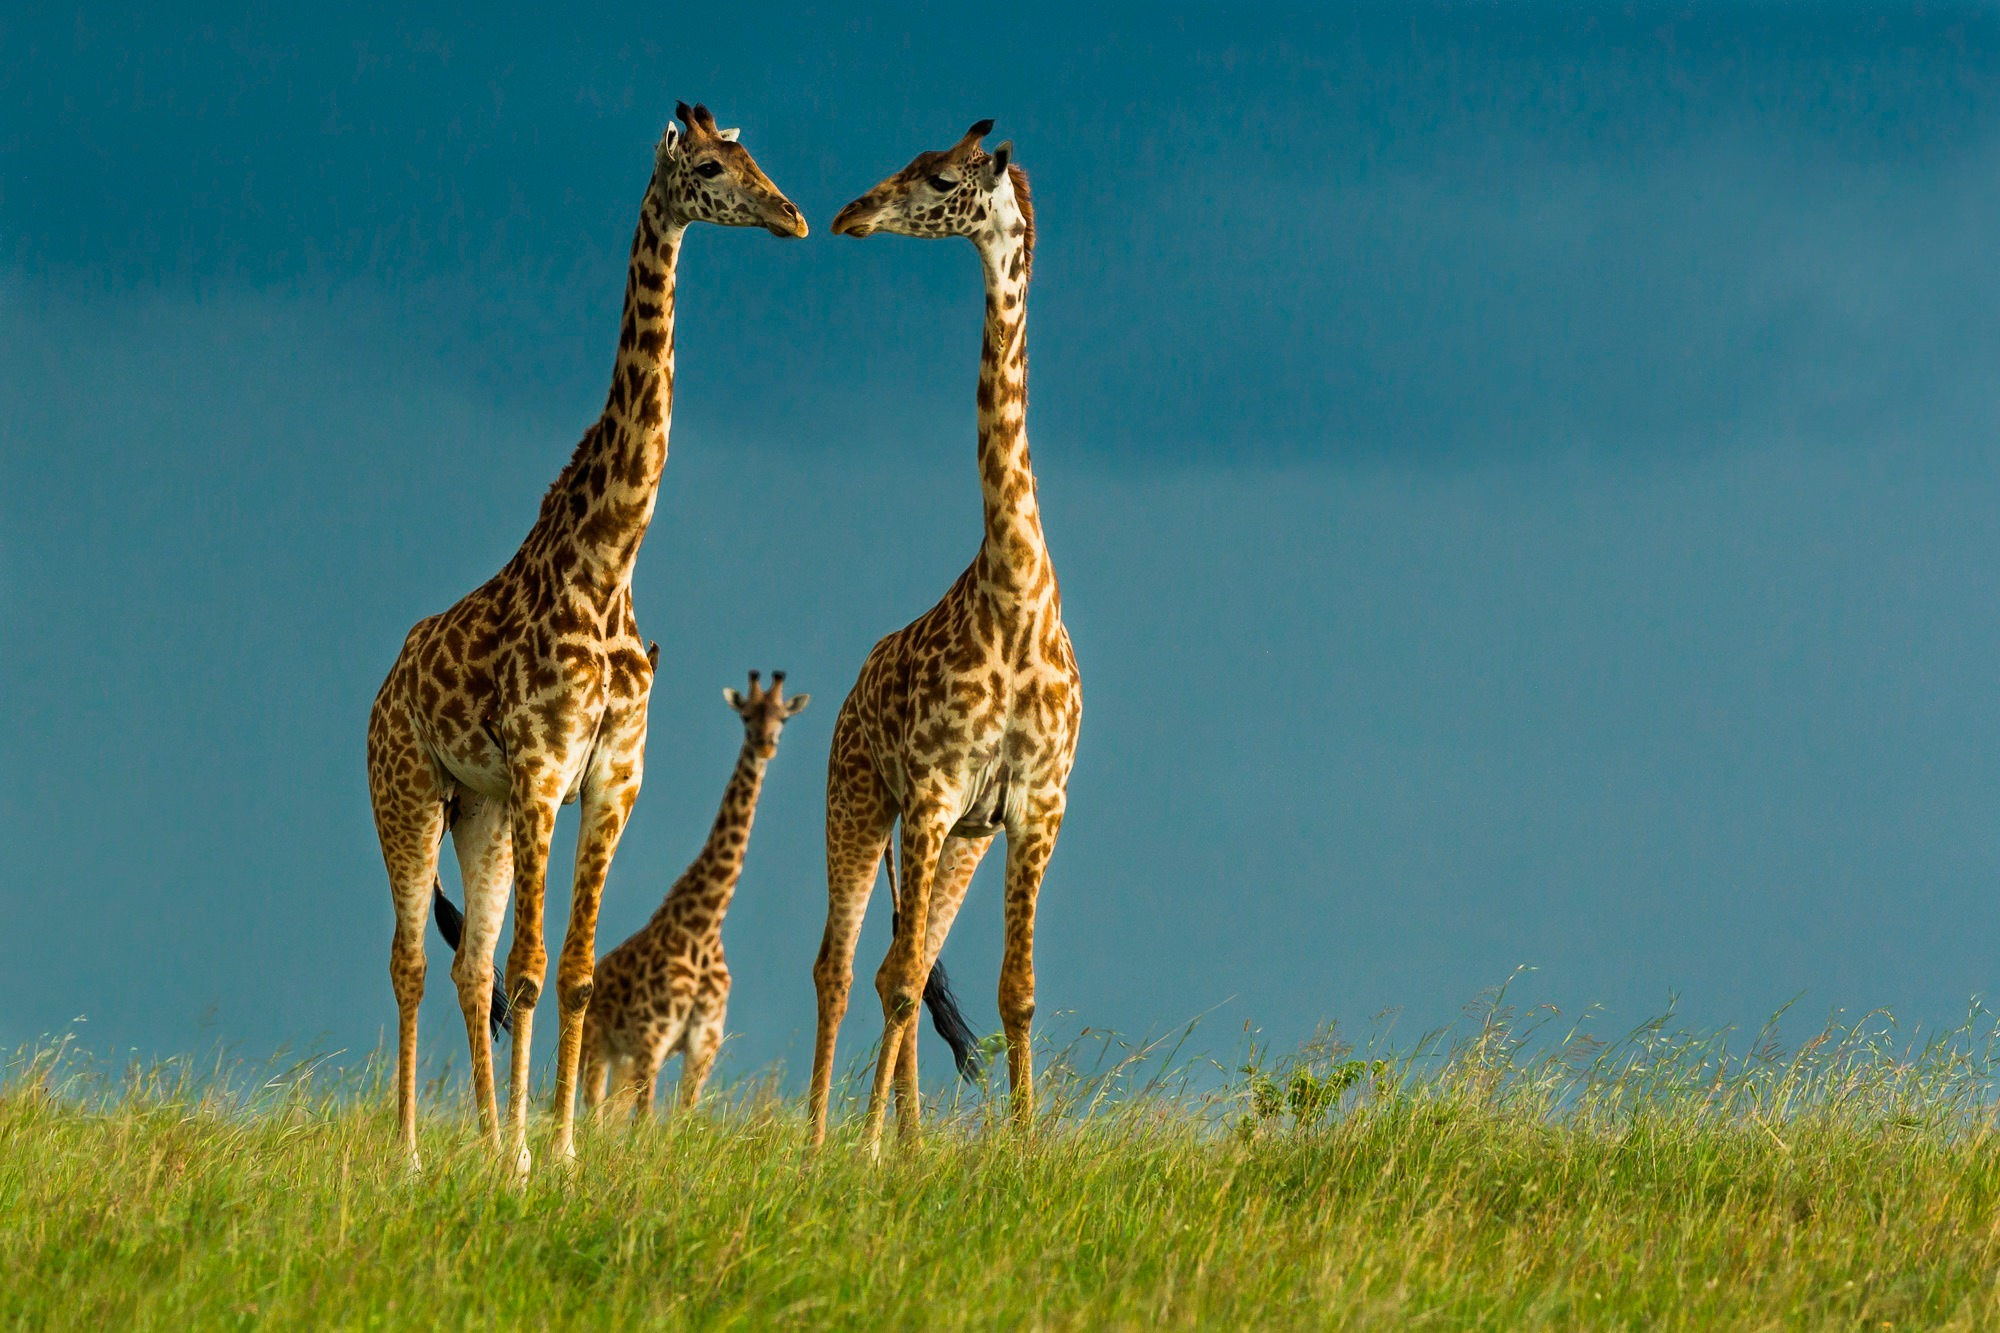 Cute Patterns For Wallpapers 21 Giraffe Wallpapers Backgrounds Images Freecreatives